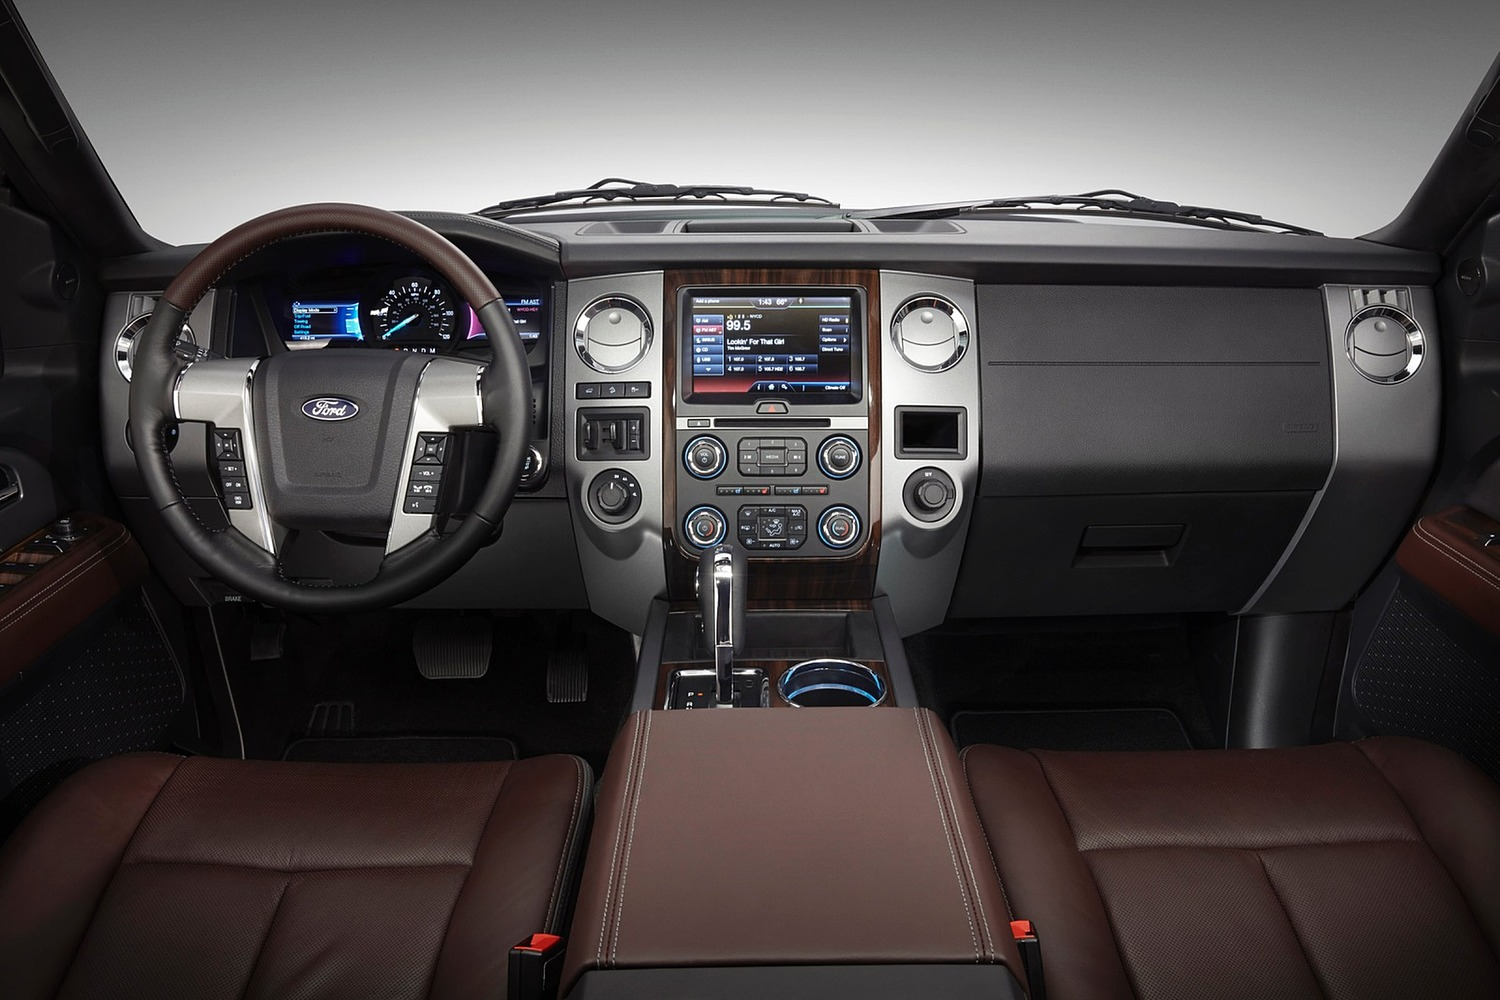 Ford Expedition Platinum 4dr SUV Dashboard (2015 model year shown)